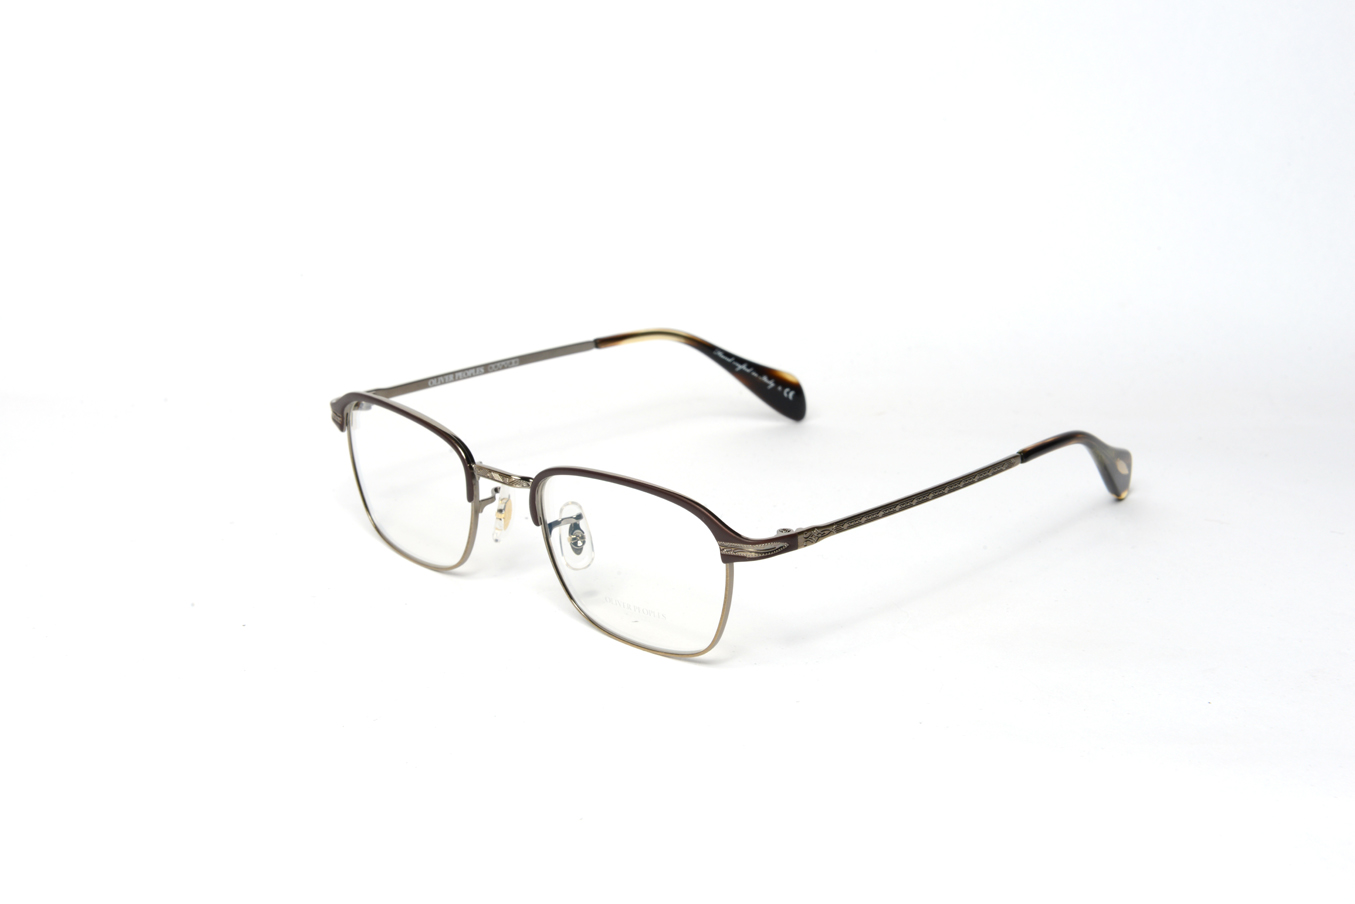 65aa1df363b73 Oliver Peoples - Saxton - Piccadilly Opticians -